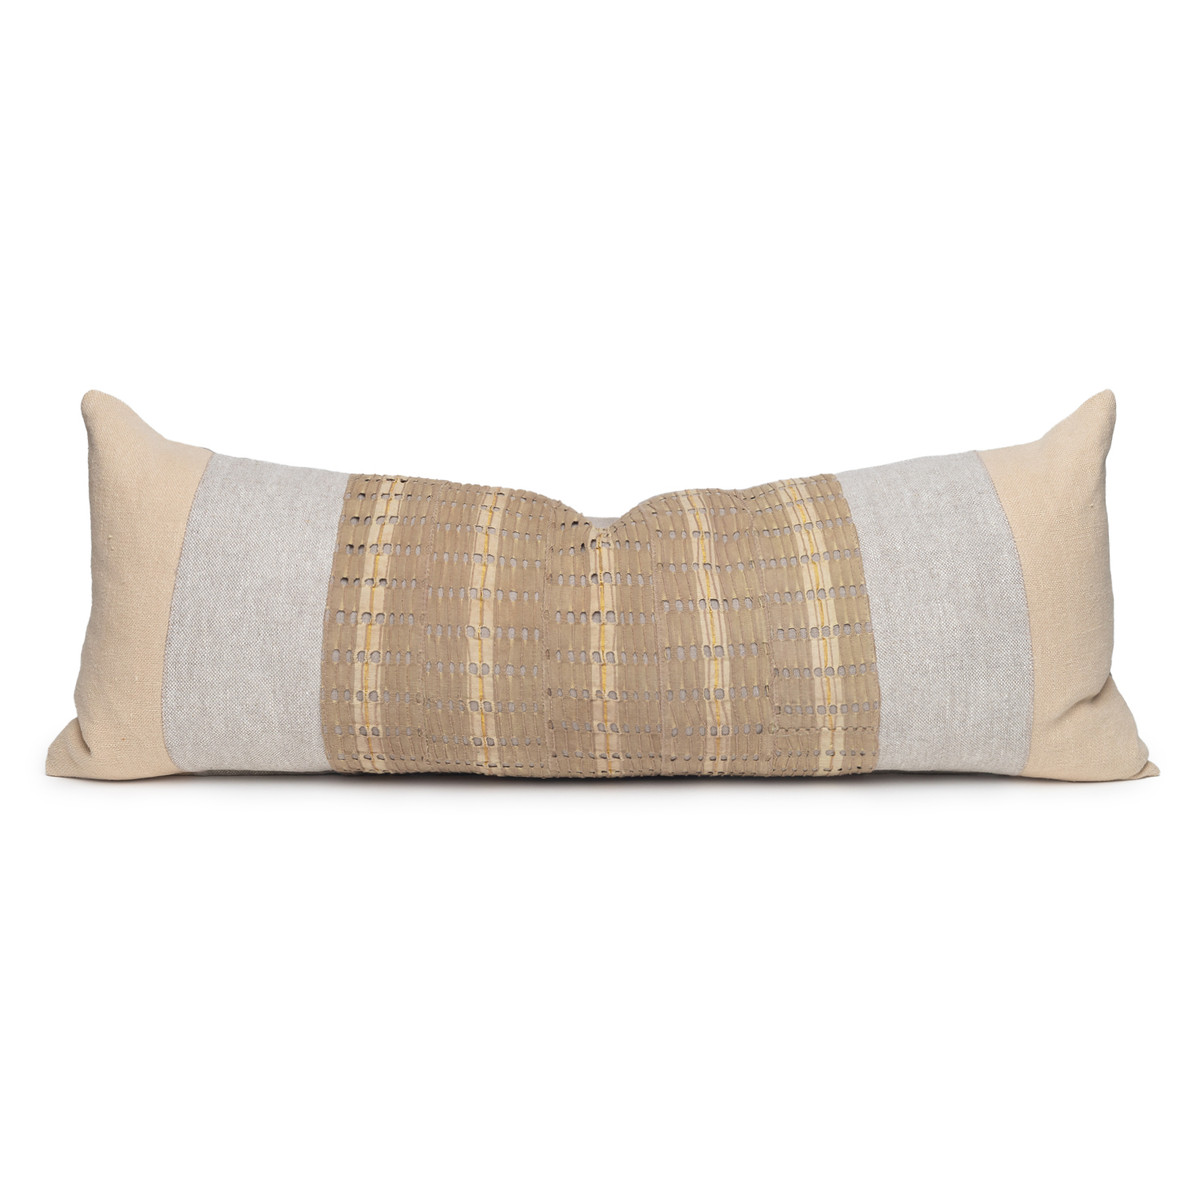 Tate Luxe Vintage Lumbar Pillow with African Aso Oke Textiles-1436- Front View